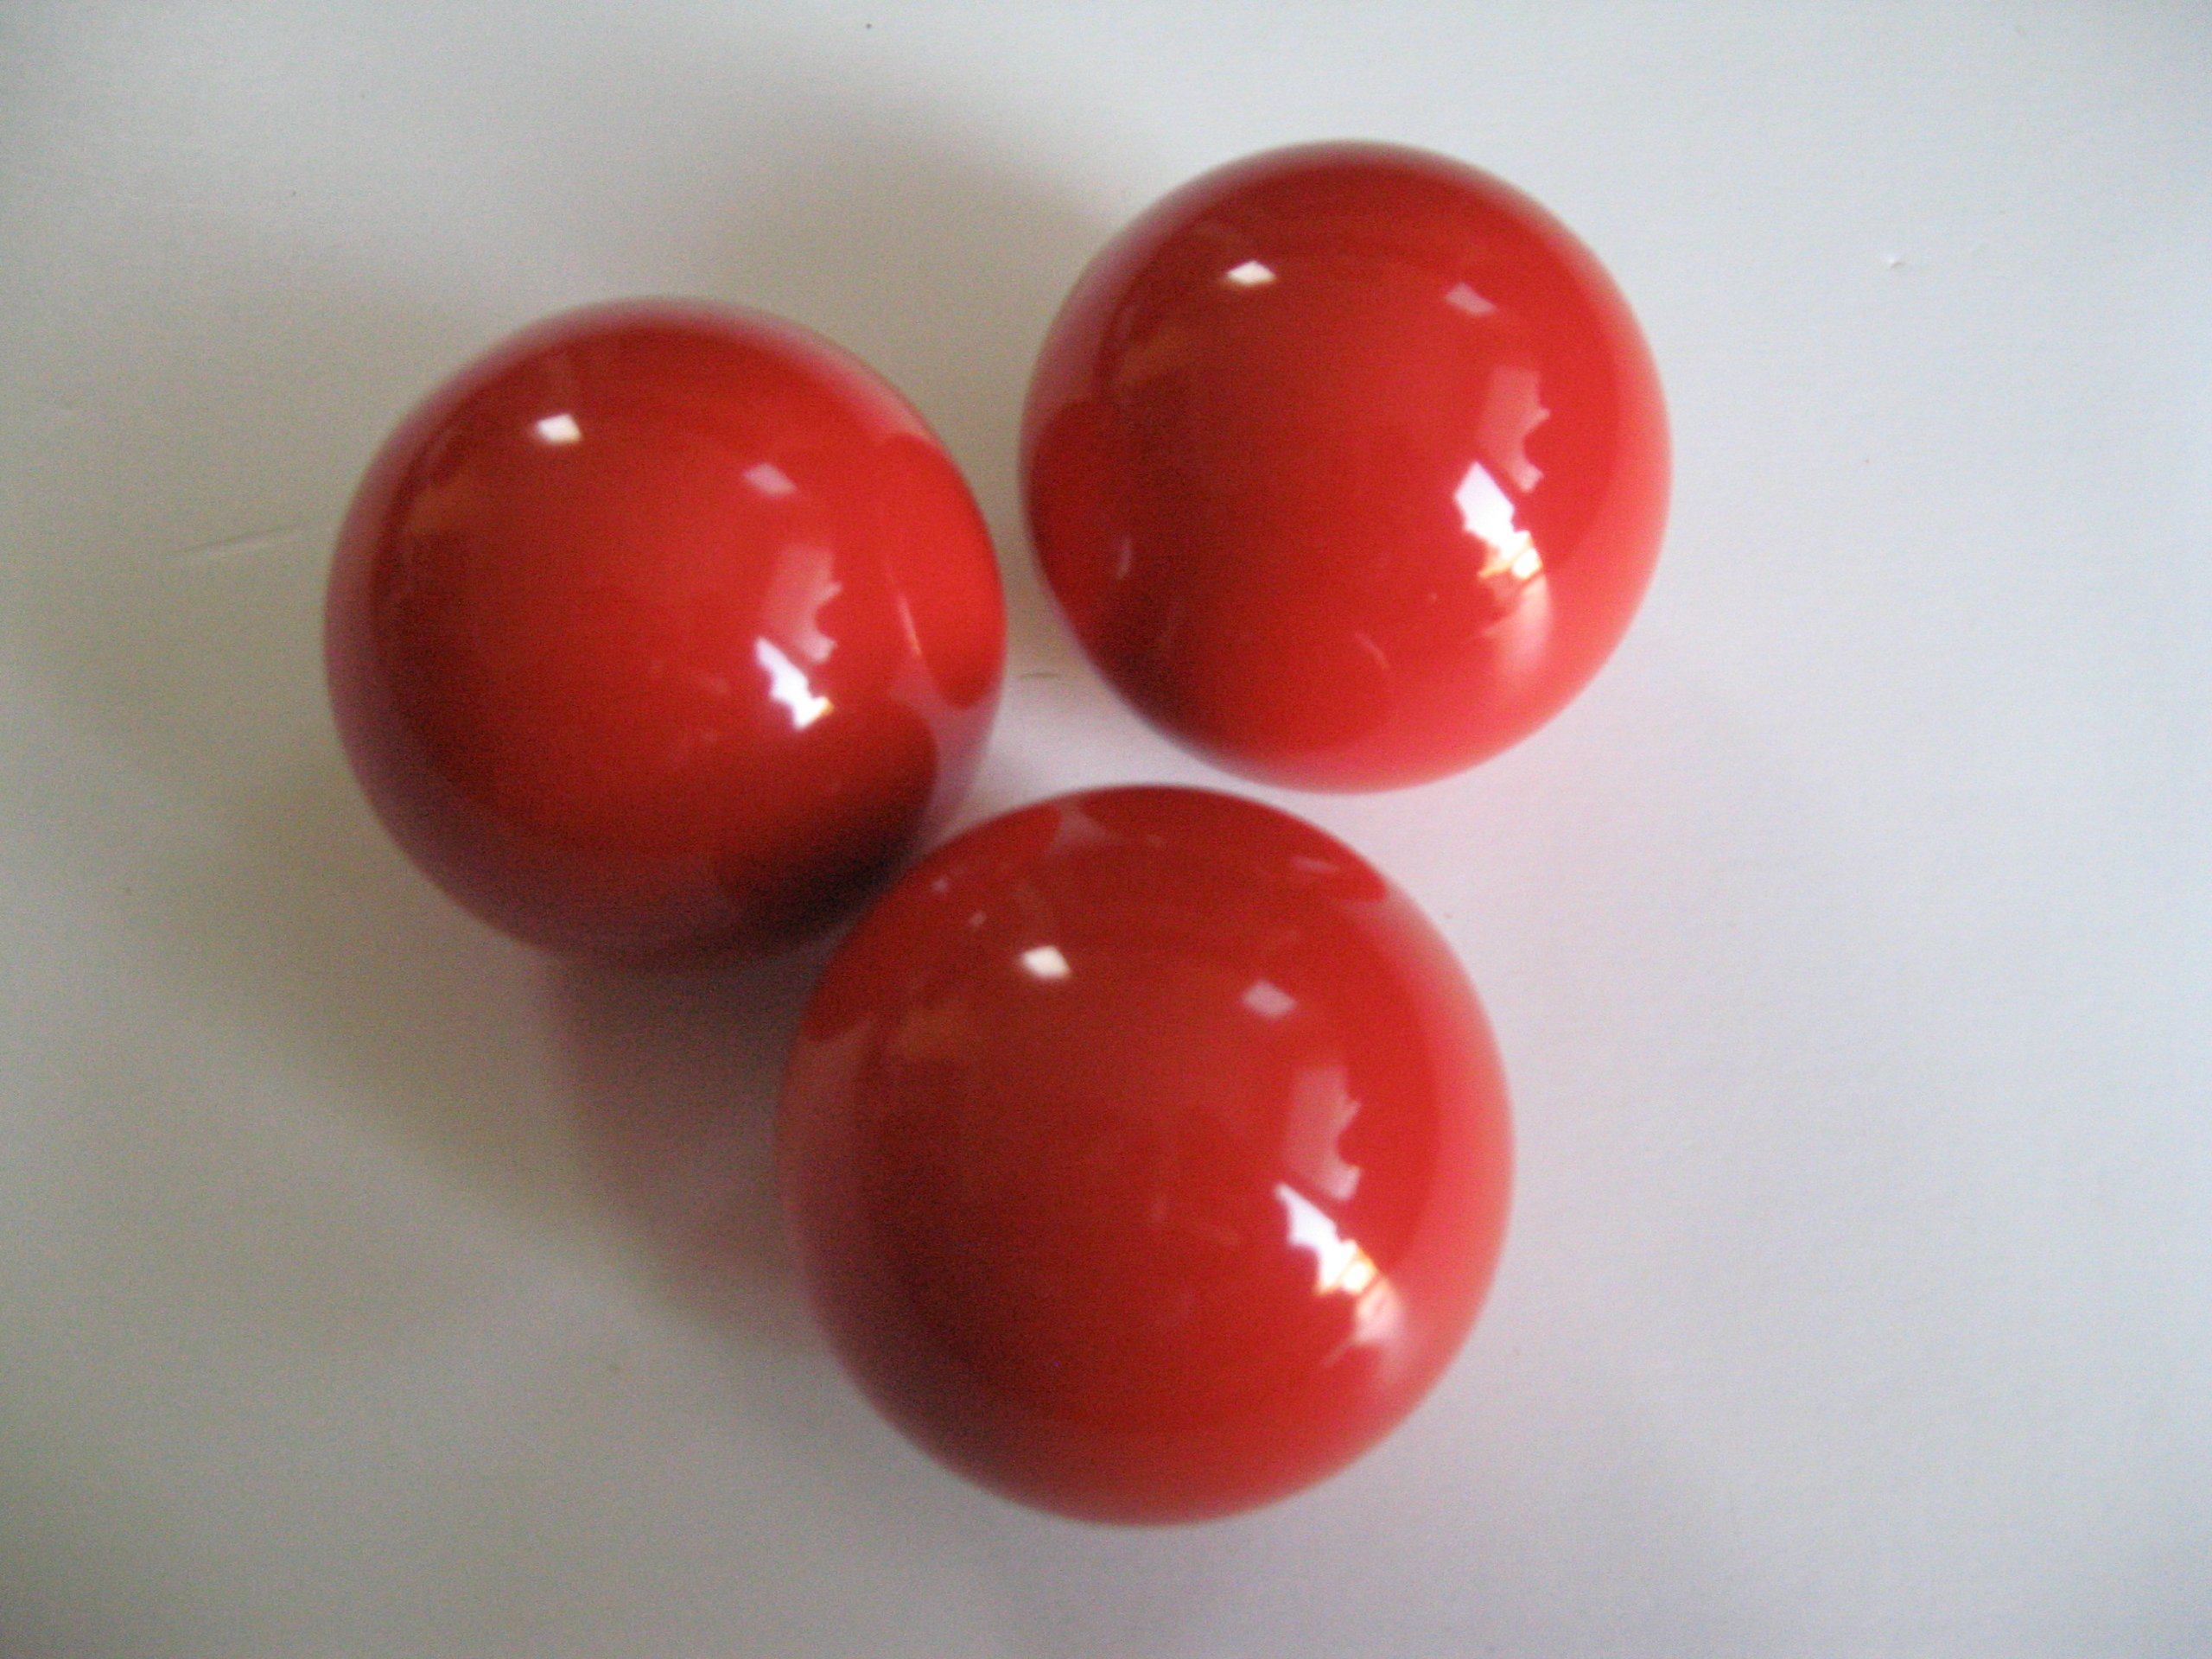 EPCO Bocce Red Pallinos - 3 Pack